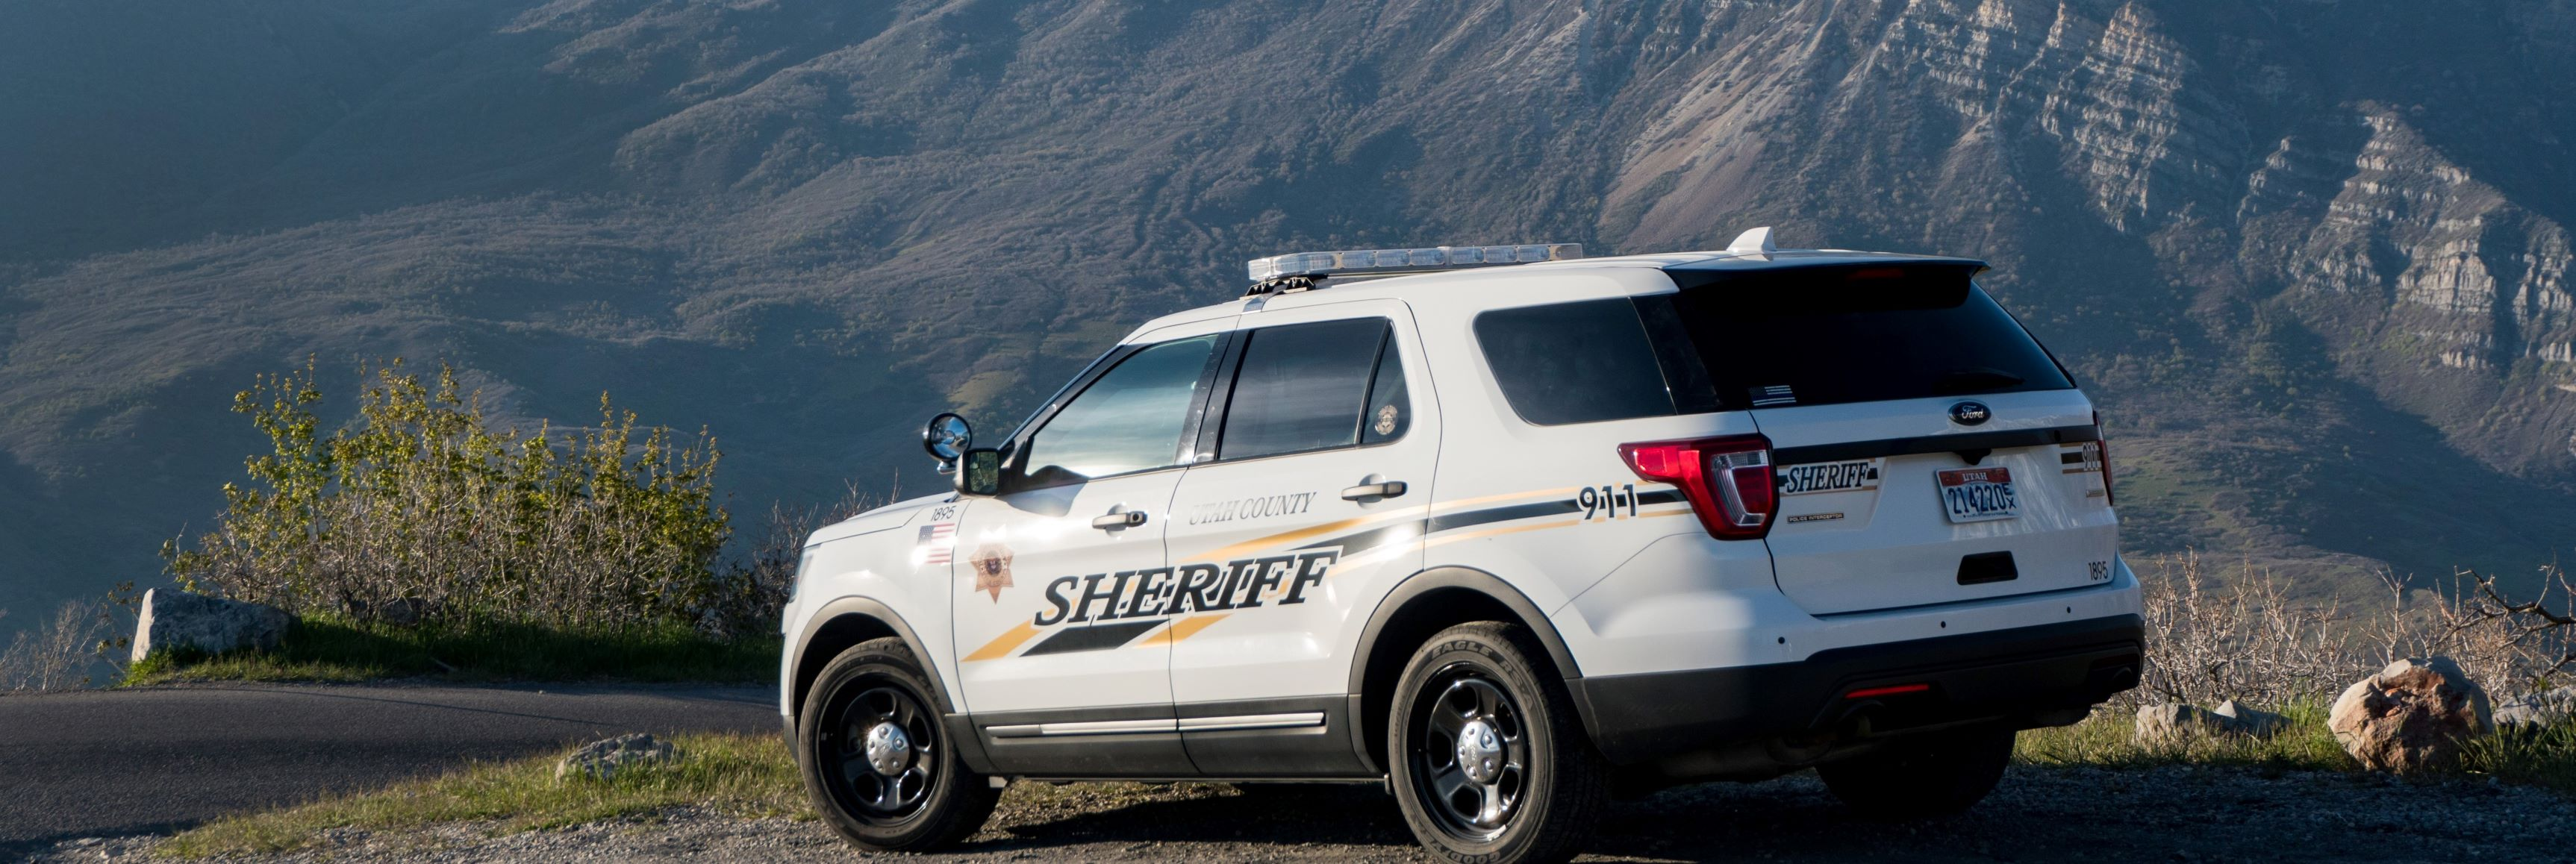 Provo Canyon with Sheriff's Office Car